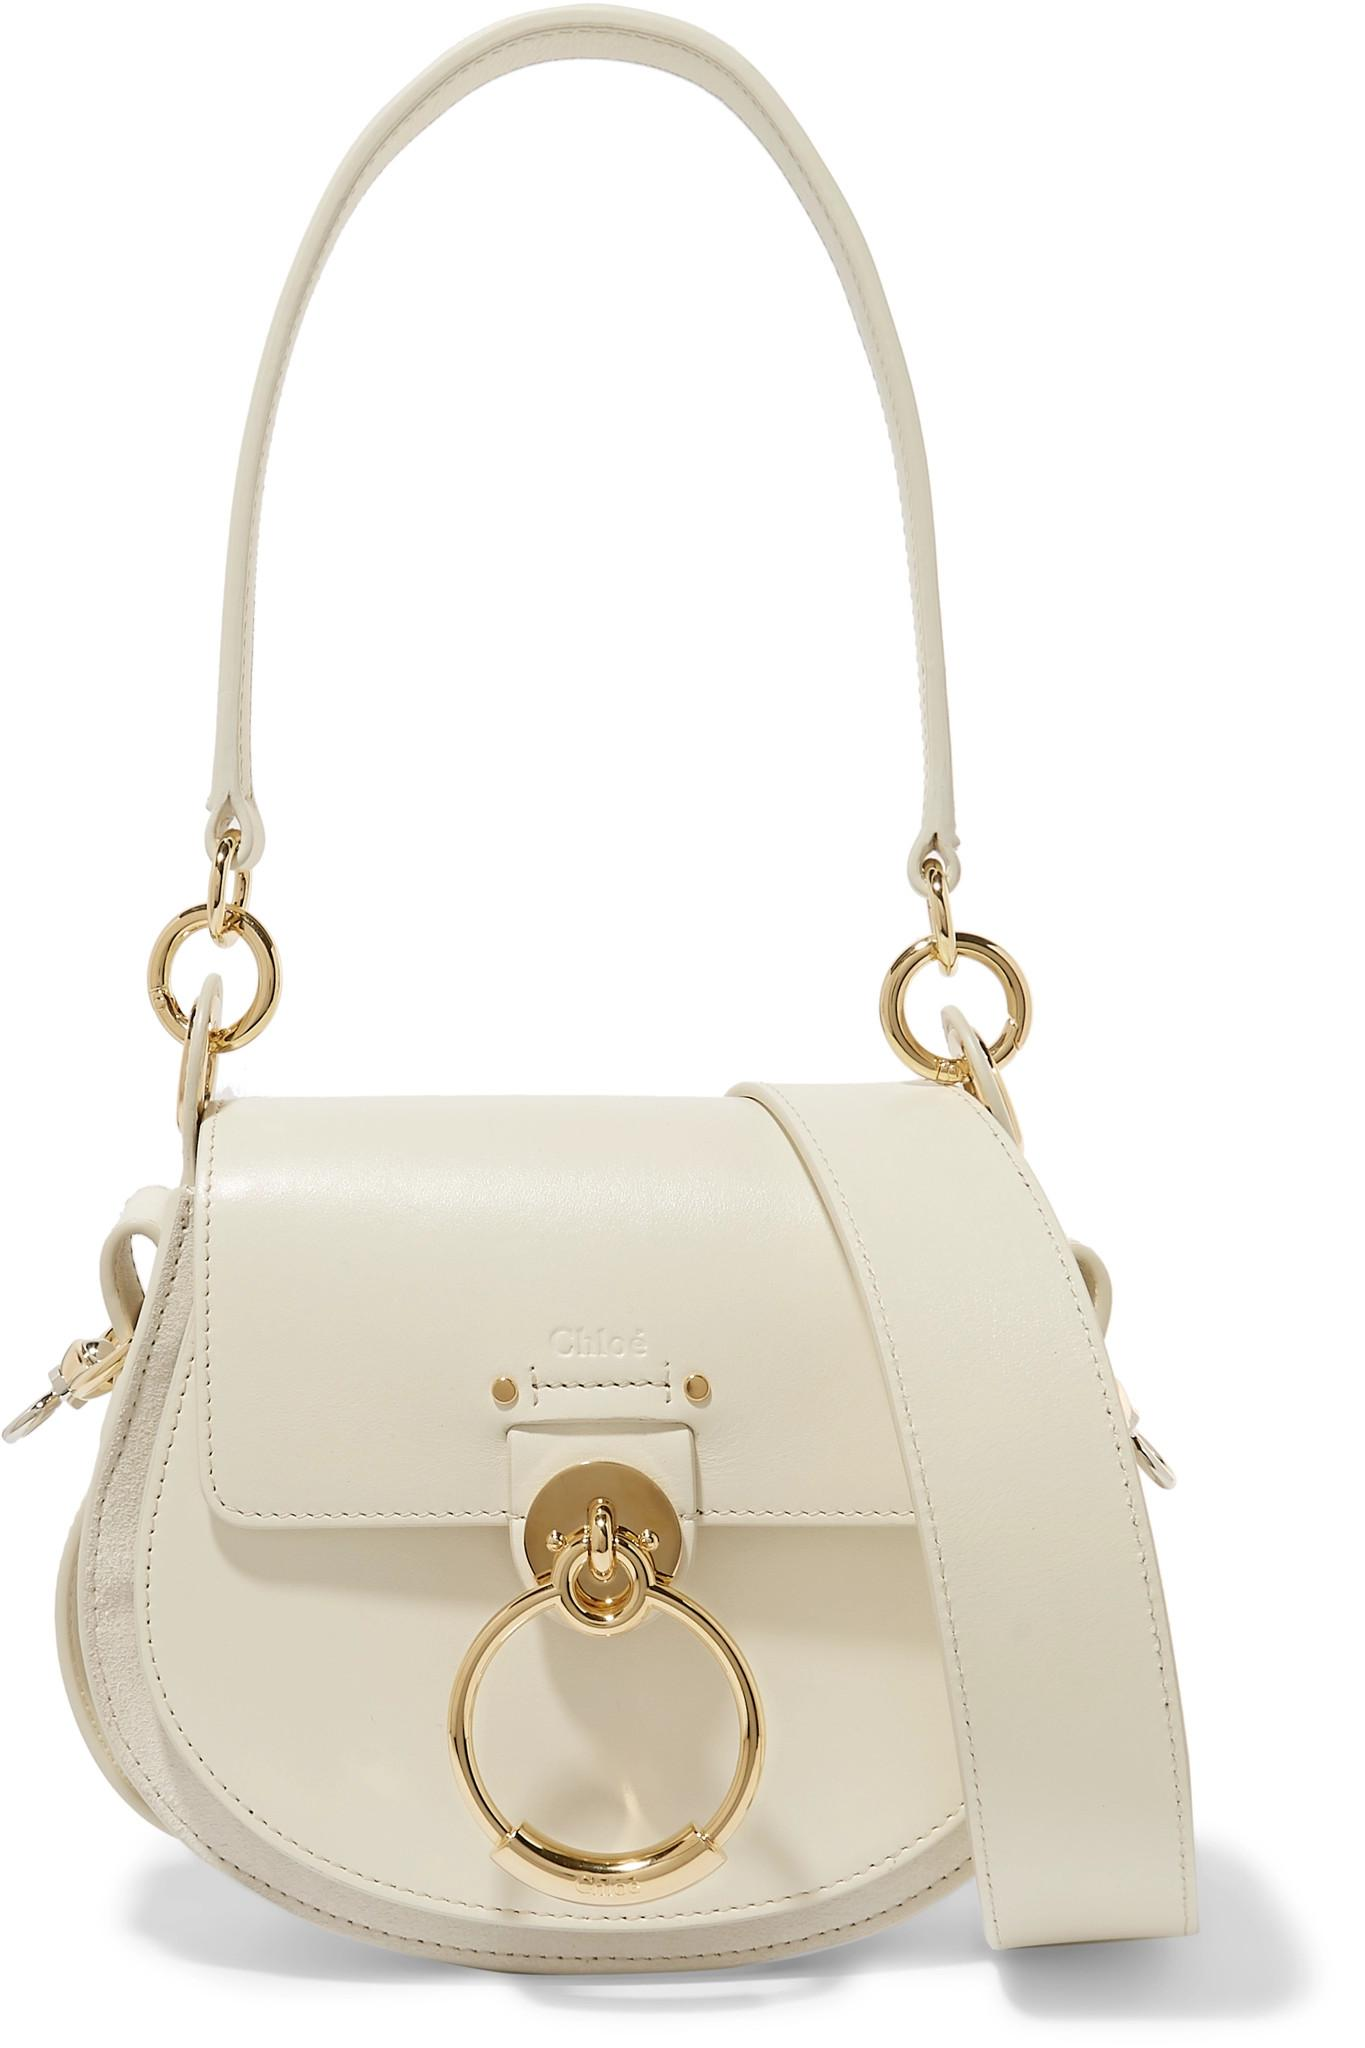 5d73e9a4b05 Lyst - Chloé Tess Small Leather And Suede Shoulder Bag in Natural